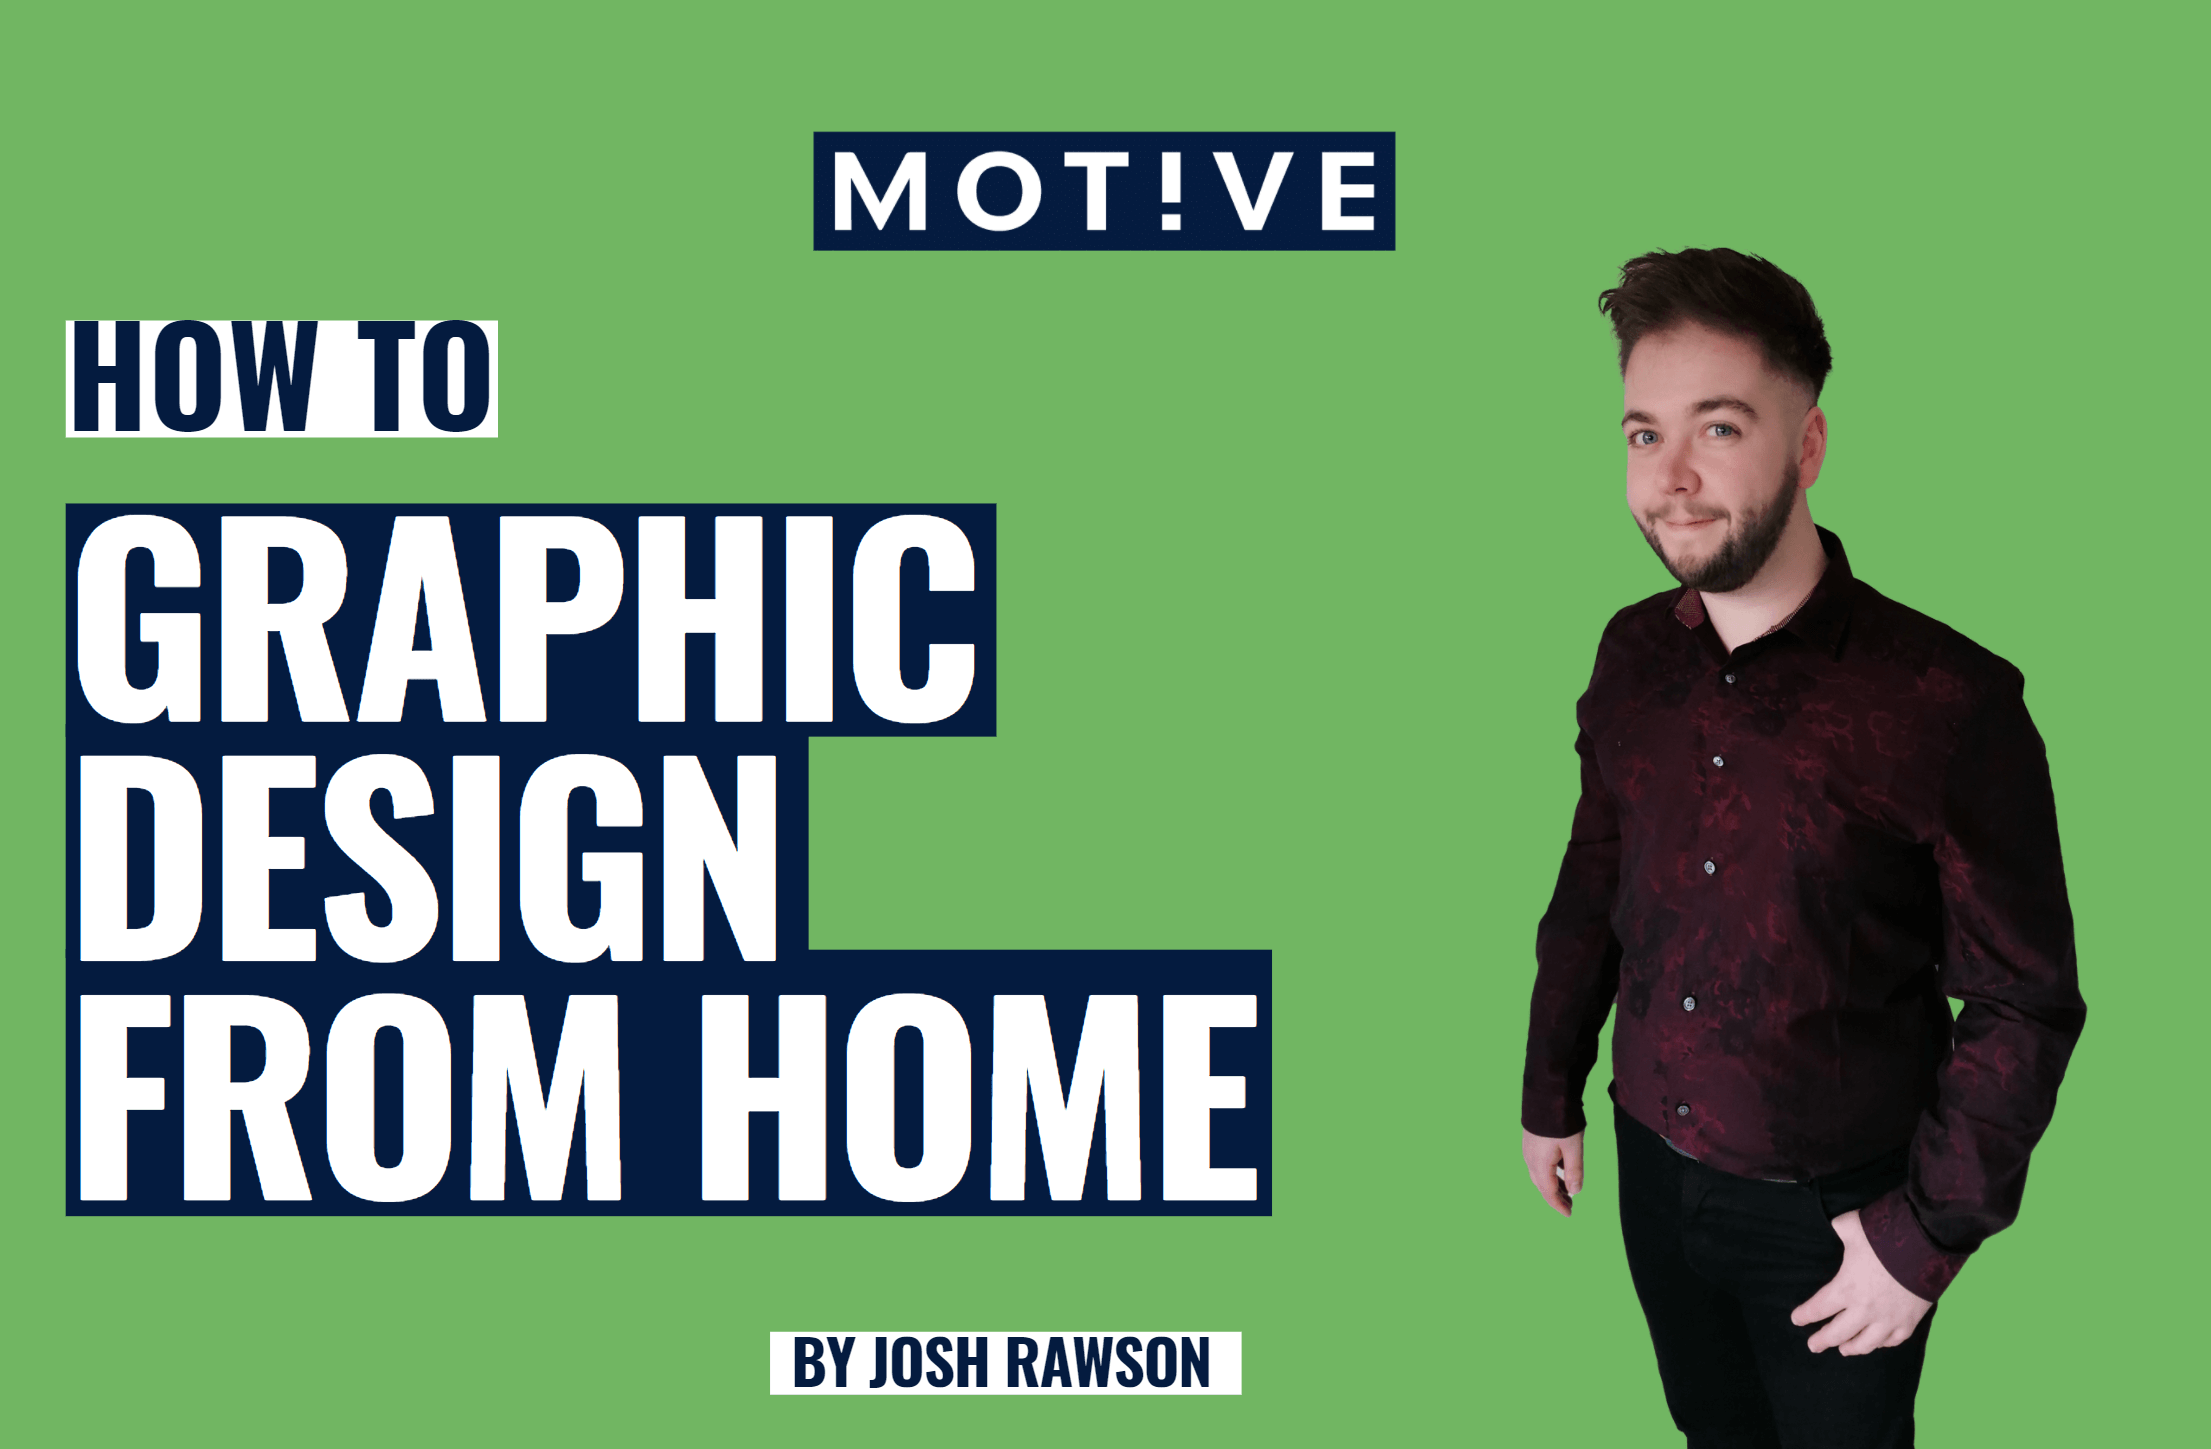 Graphic designing from home